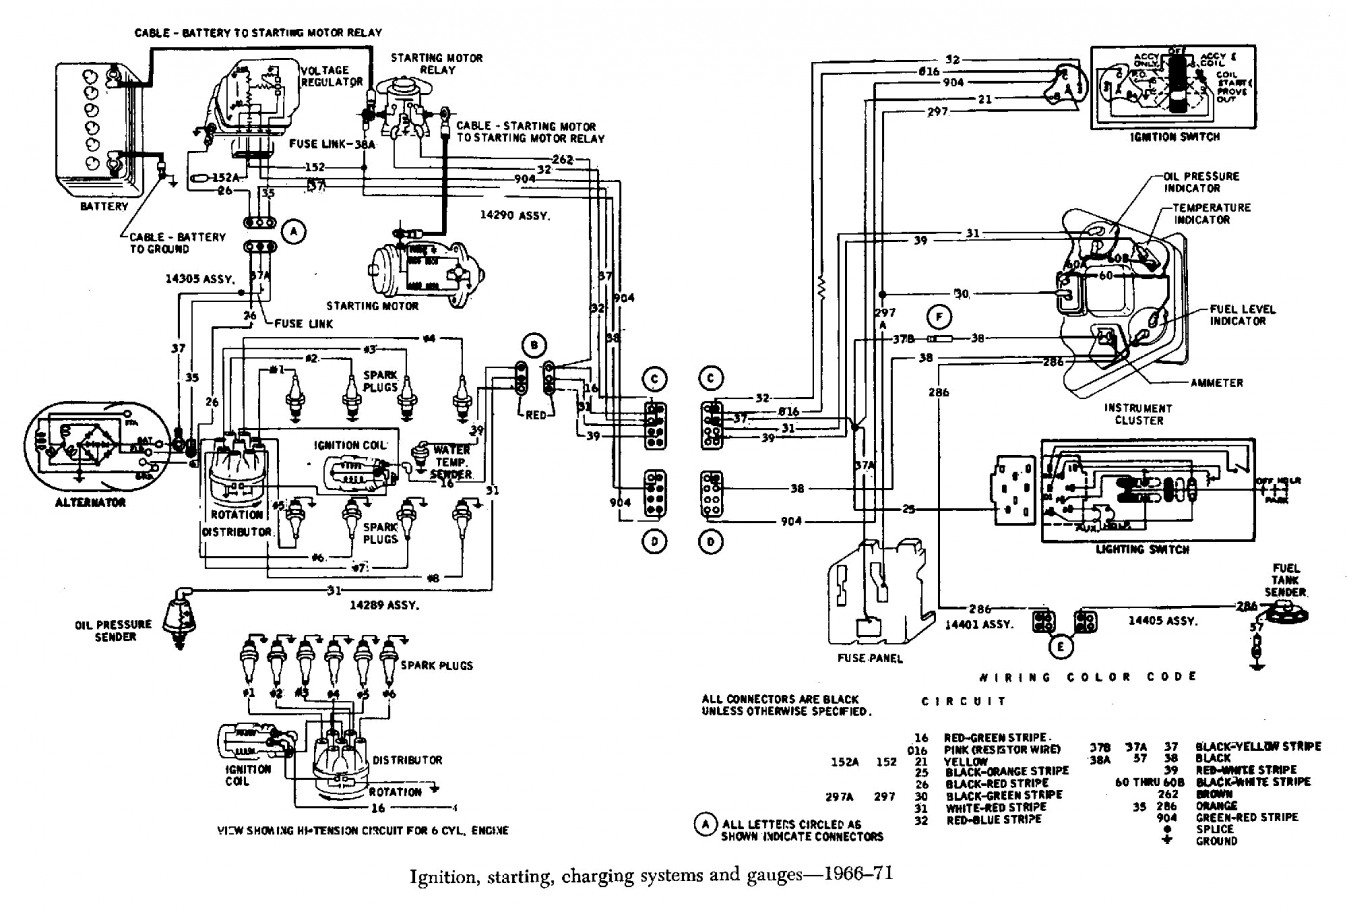 New Chevy 350 Engine Wiring Diagram 400 Sbc Library - Ignition Wiring Diagram Chevy 350